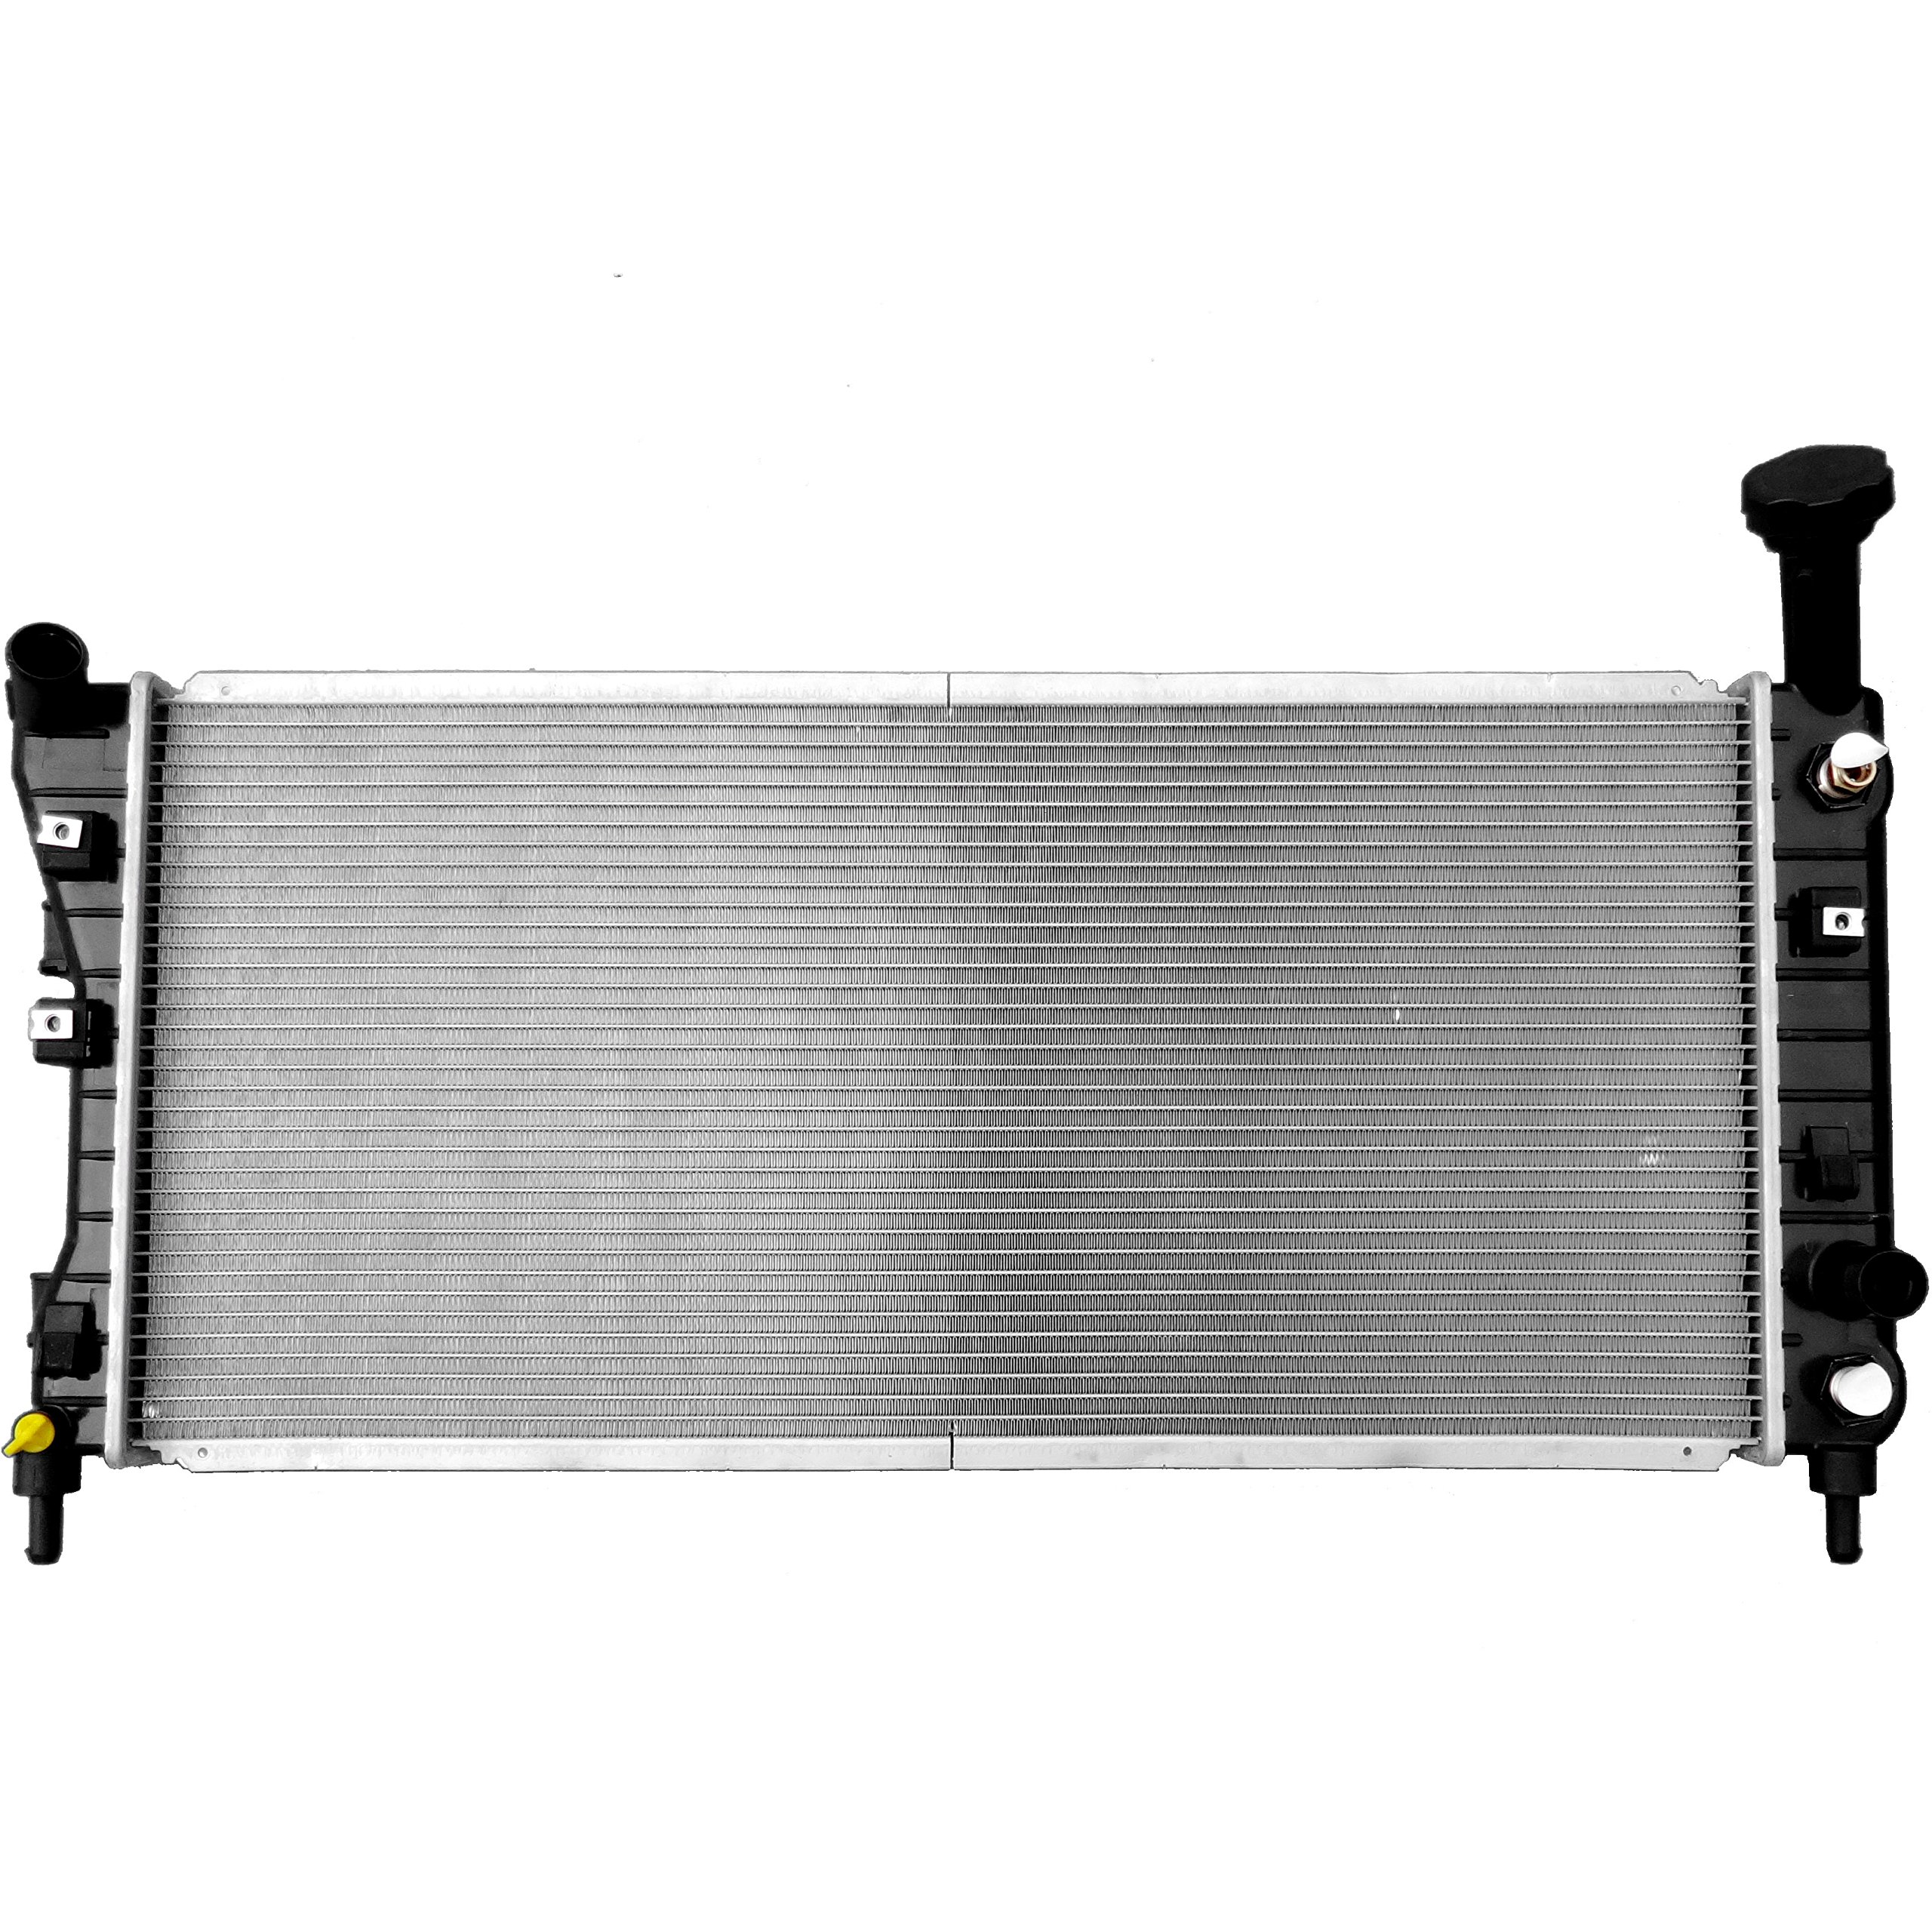 SCITOO 2710 Radiator fits 2005-2009 Buick Allure CX/CXL/CXS Sedan 4-Door 3.6L 3.8L Buick LaCrosse CX/CXL Sedan 4-Door 3.8L